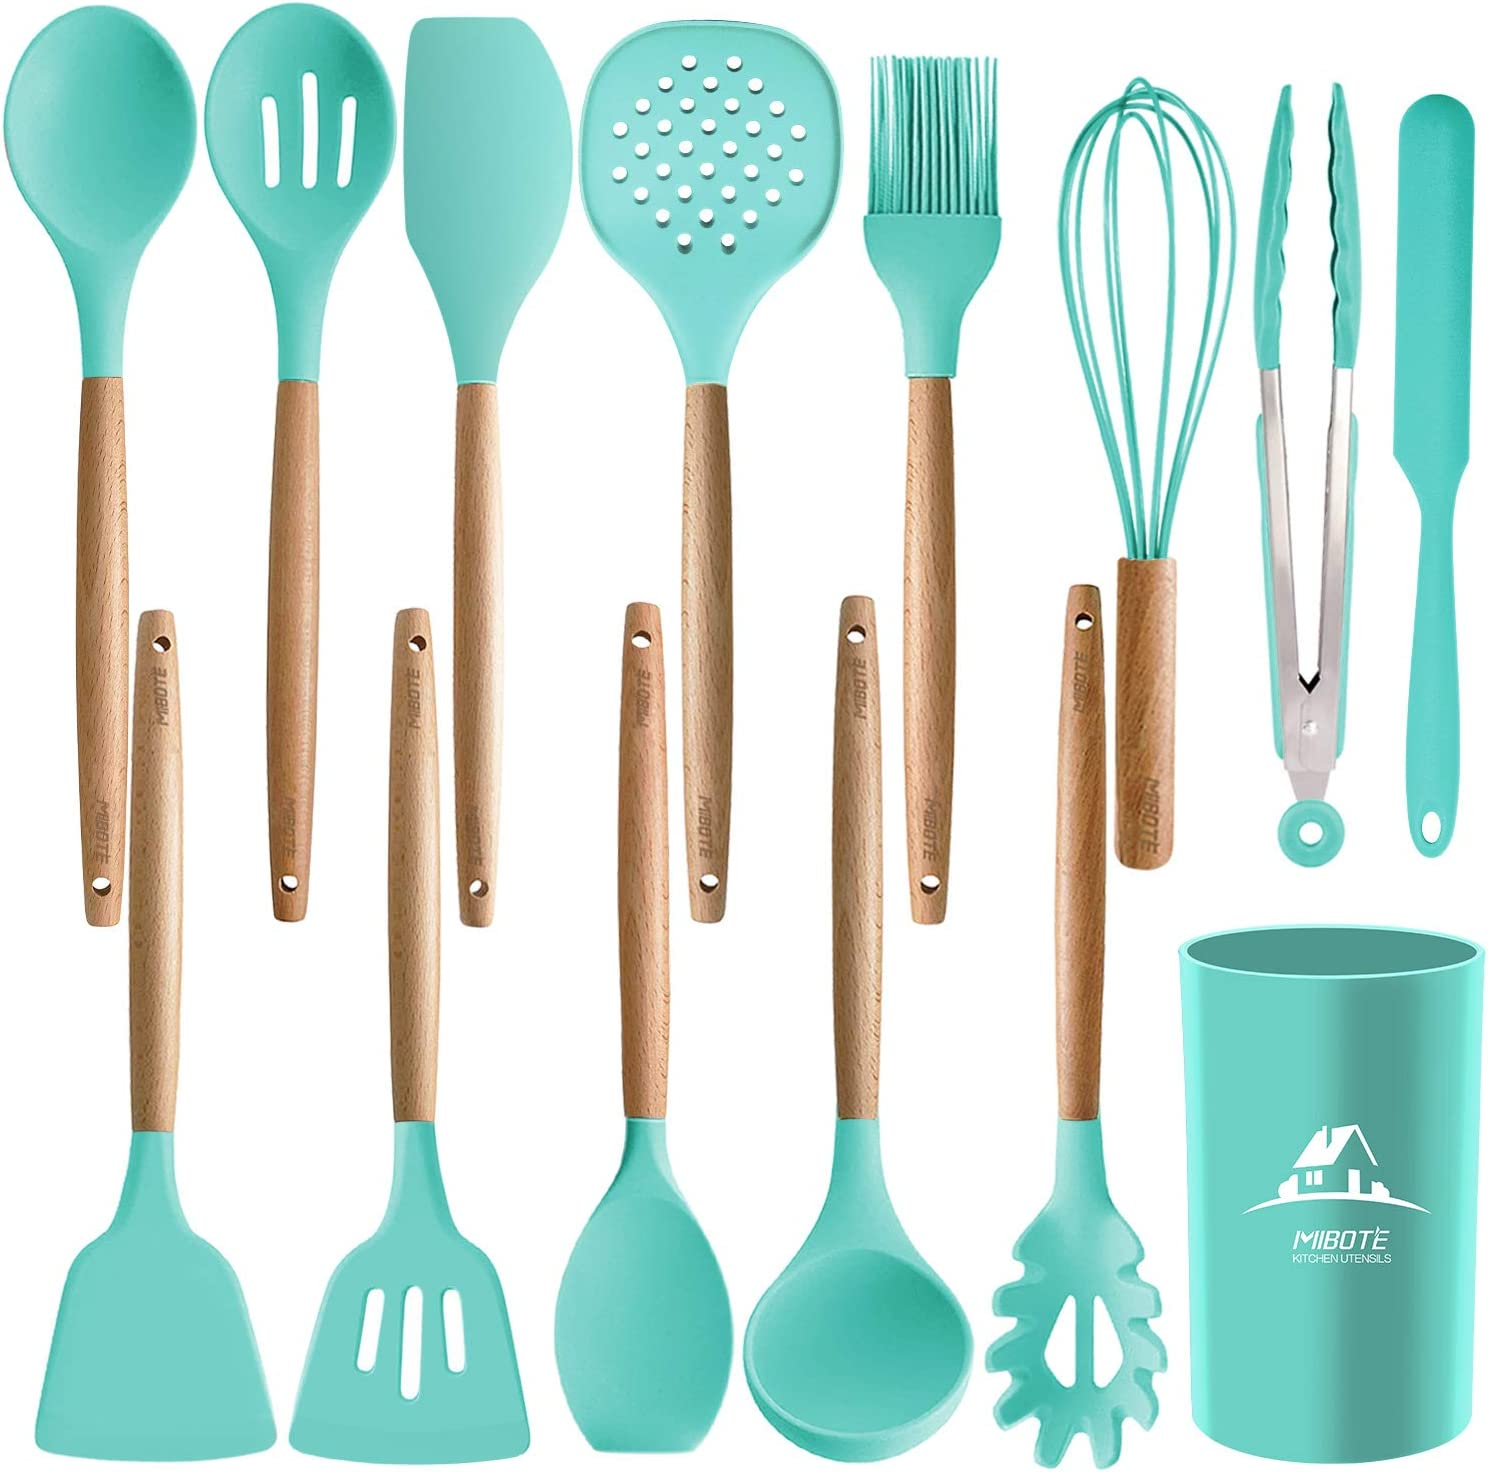 14PCS Silicone Cooking Kitchen Utensils Set with Holder to make delicious pork chop recipe